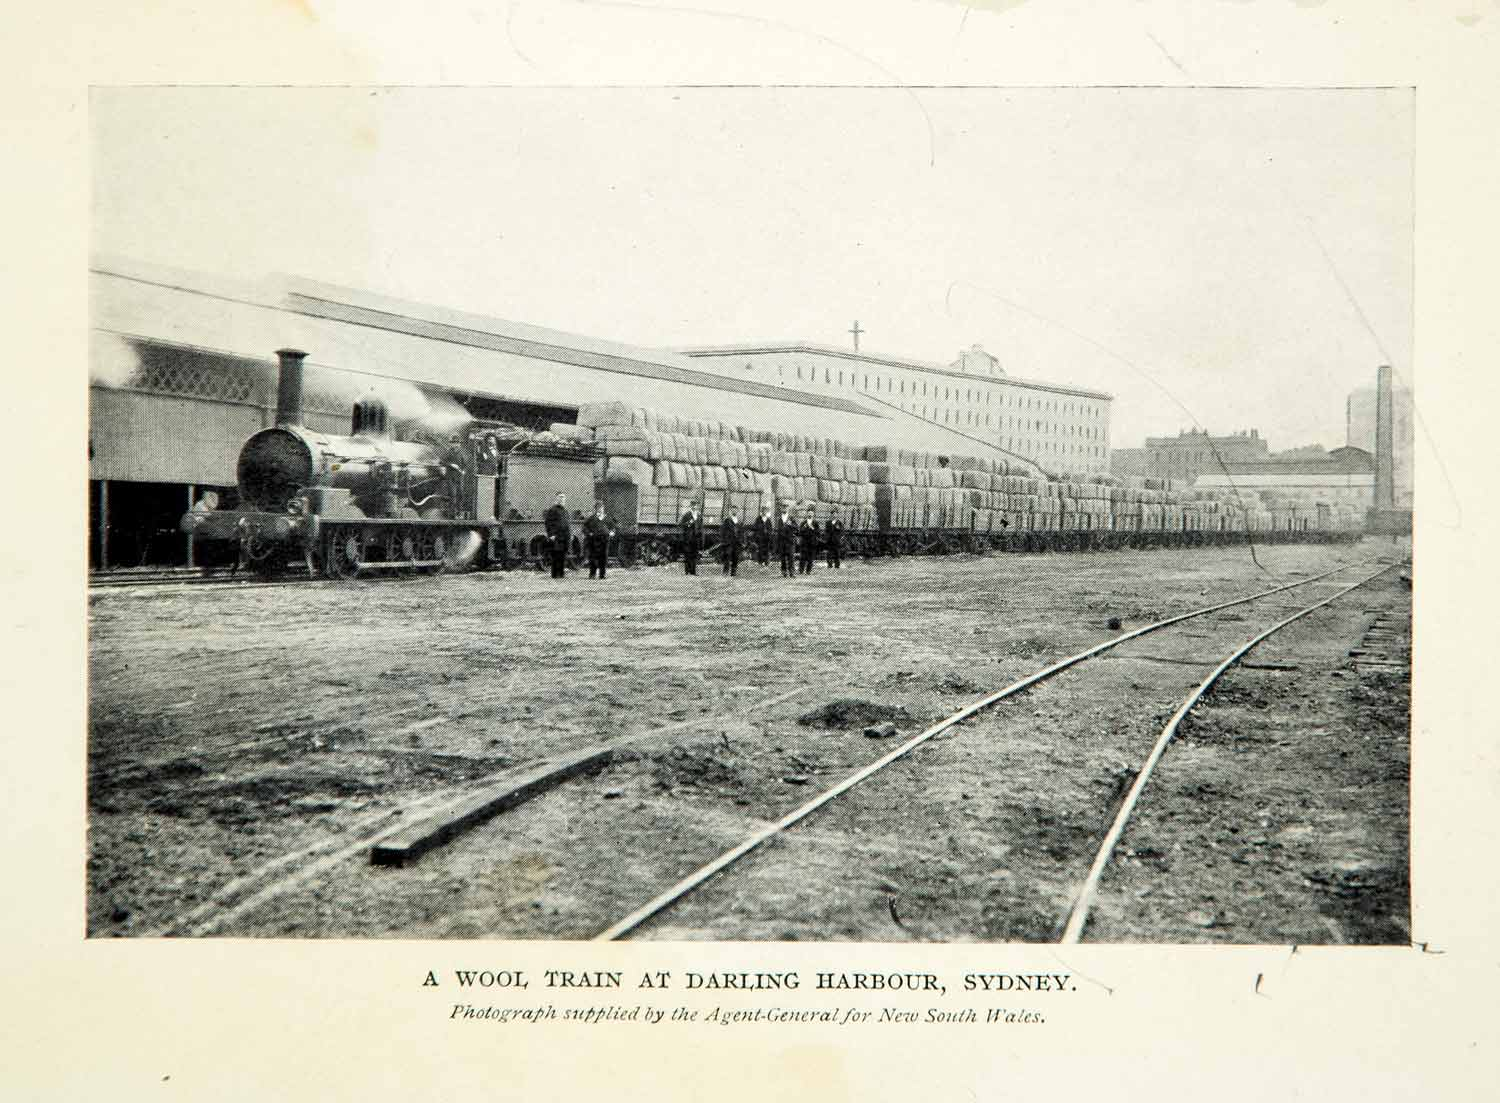 1910 Print Wool Train Darling Harbour Sydney Historical Australia Train XGHD8